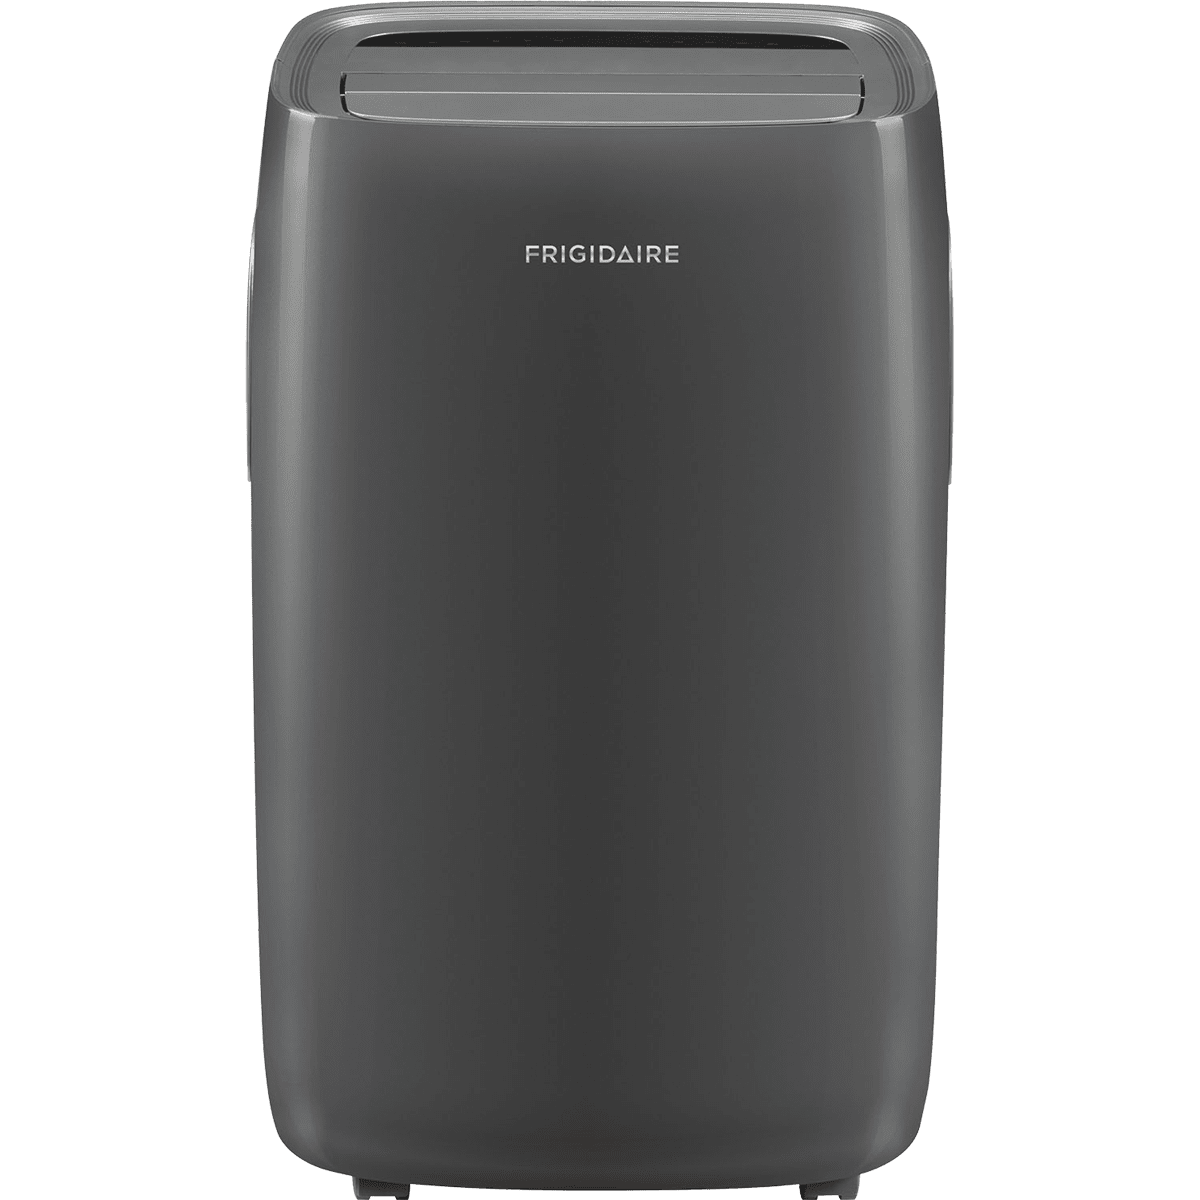 Frigidaire FFPA1222T1 12,000 BTU Portable Air Conditioner fr6400